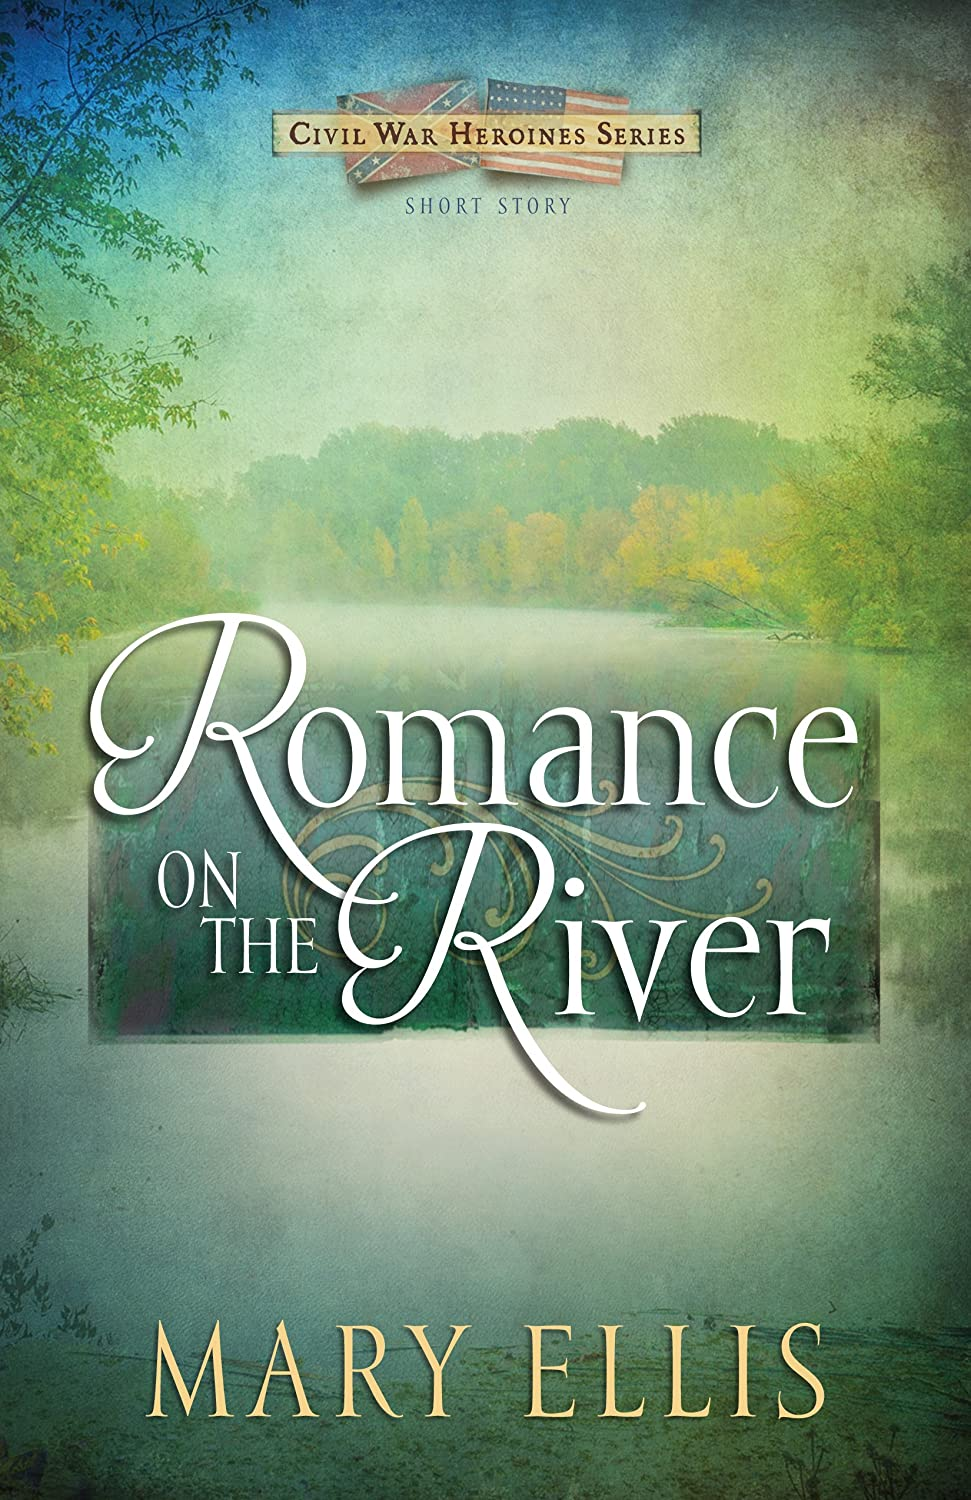 Romance on the River (Free Short Story) (Civil War Heroines Series) [Kindle Edition] Mary Ellis (Author)